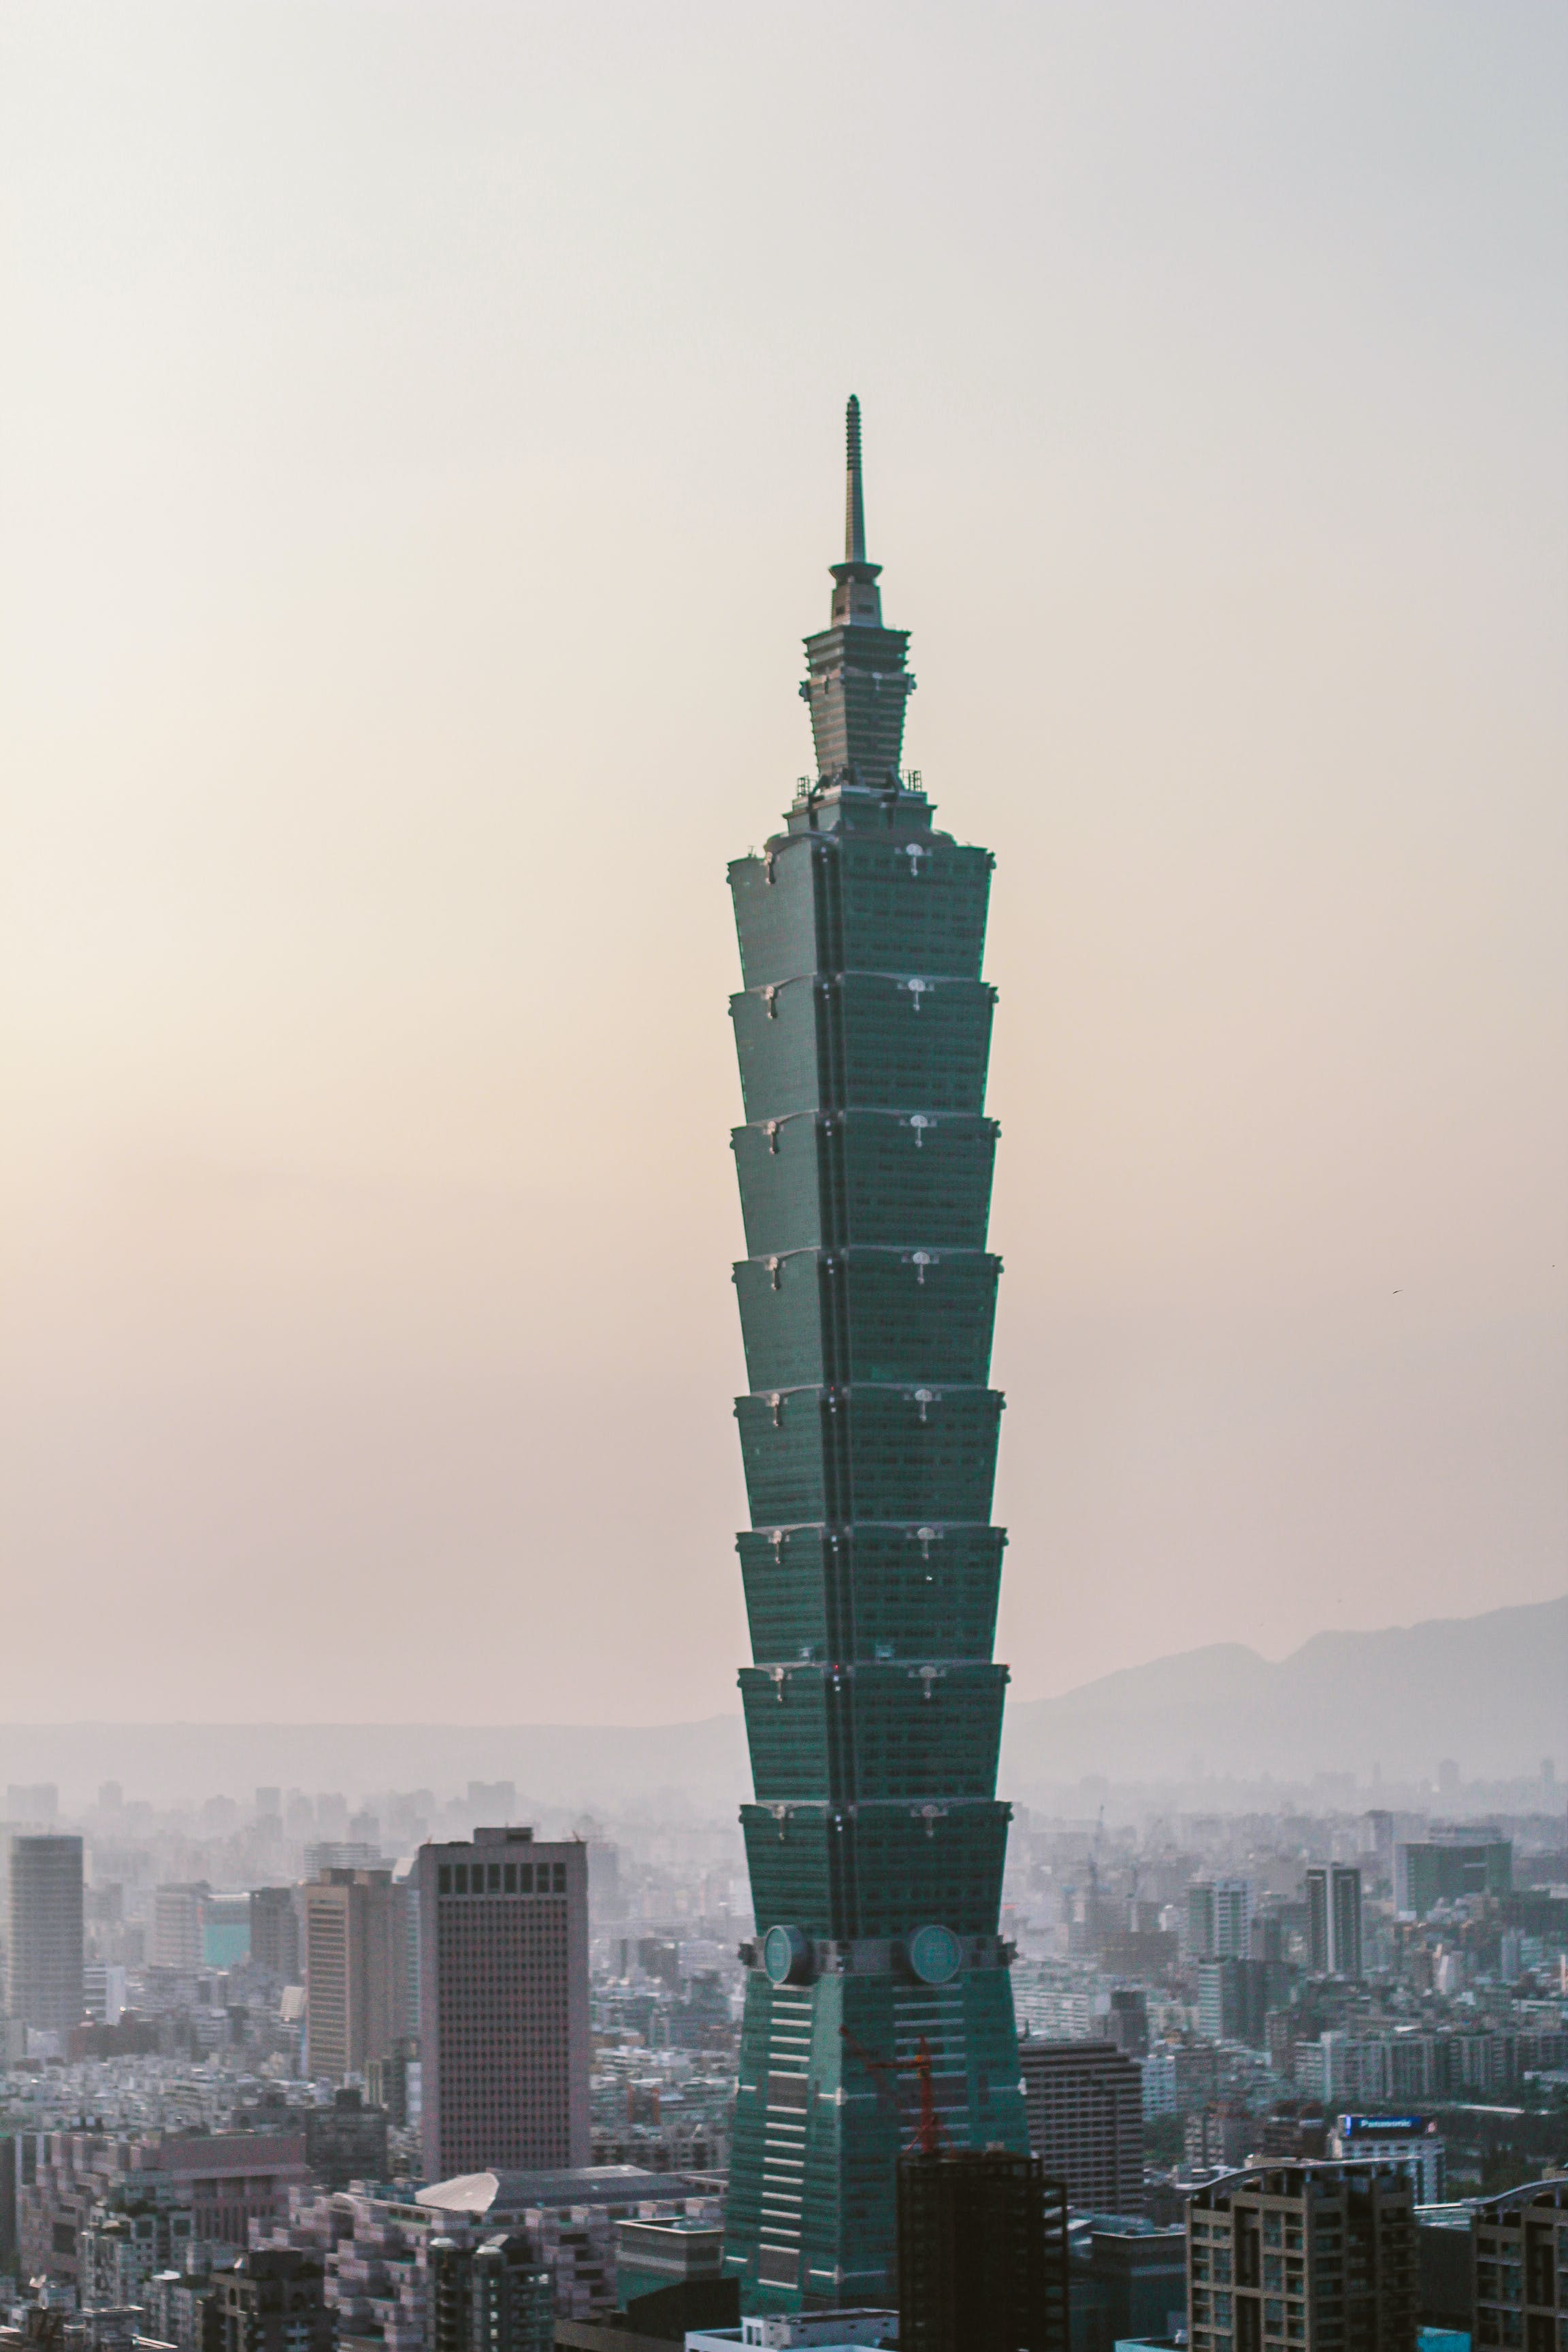 Taipei 101 Under Clear Sky at Daytime